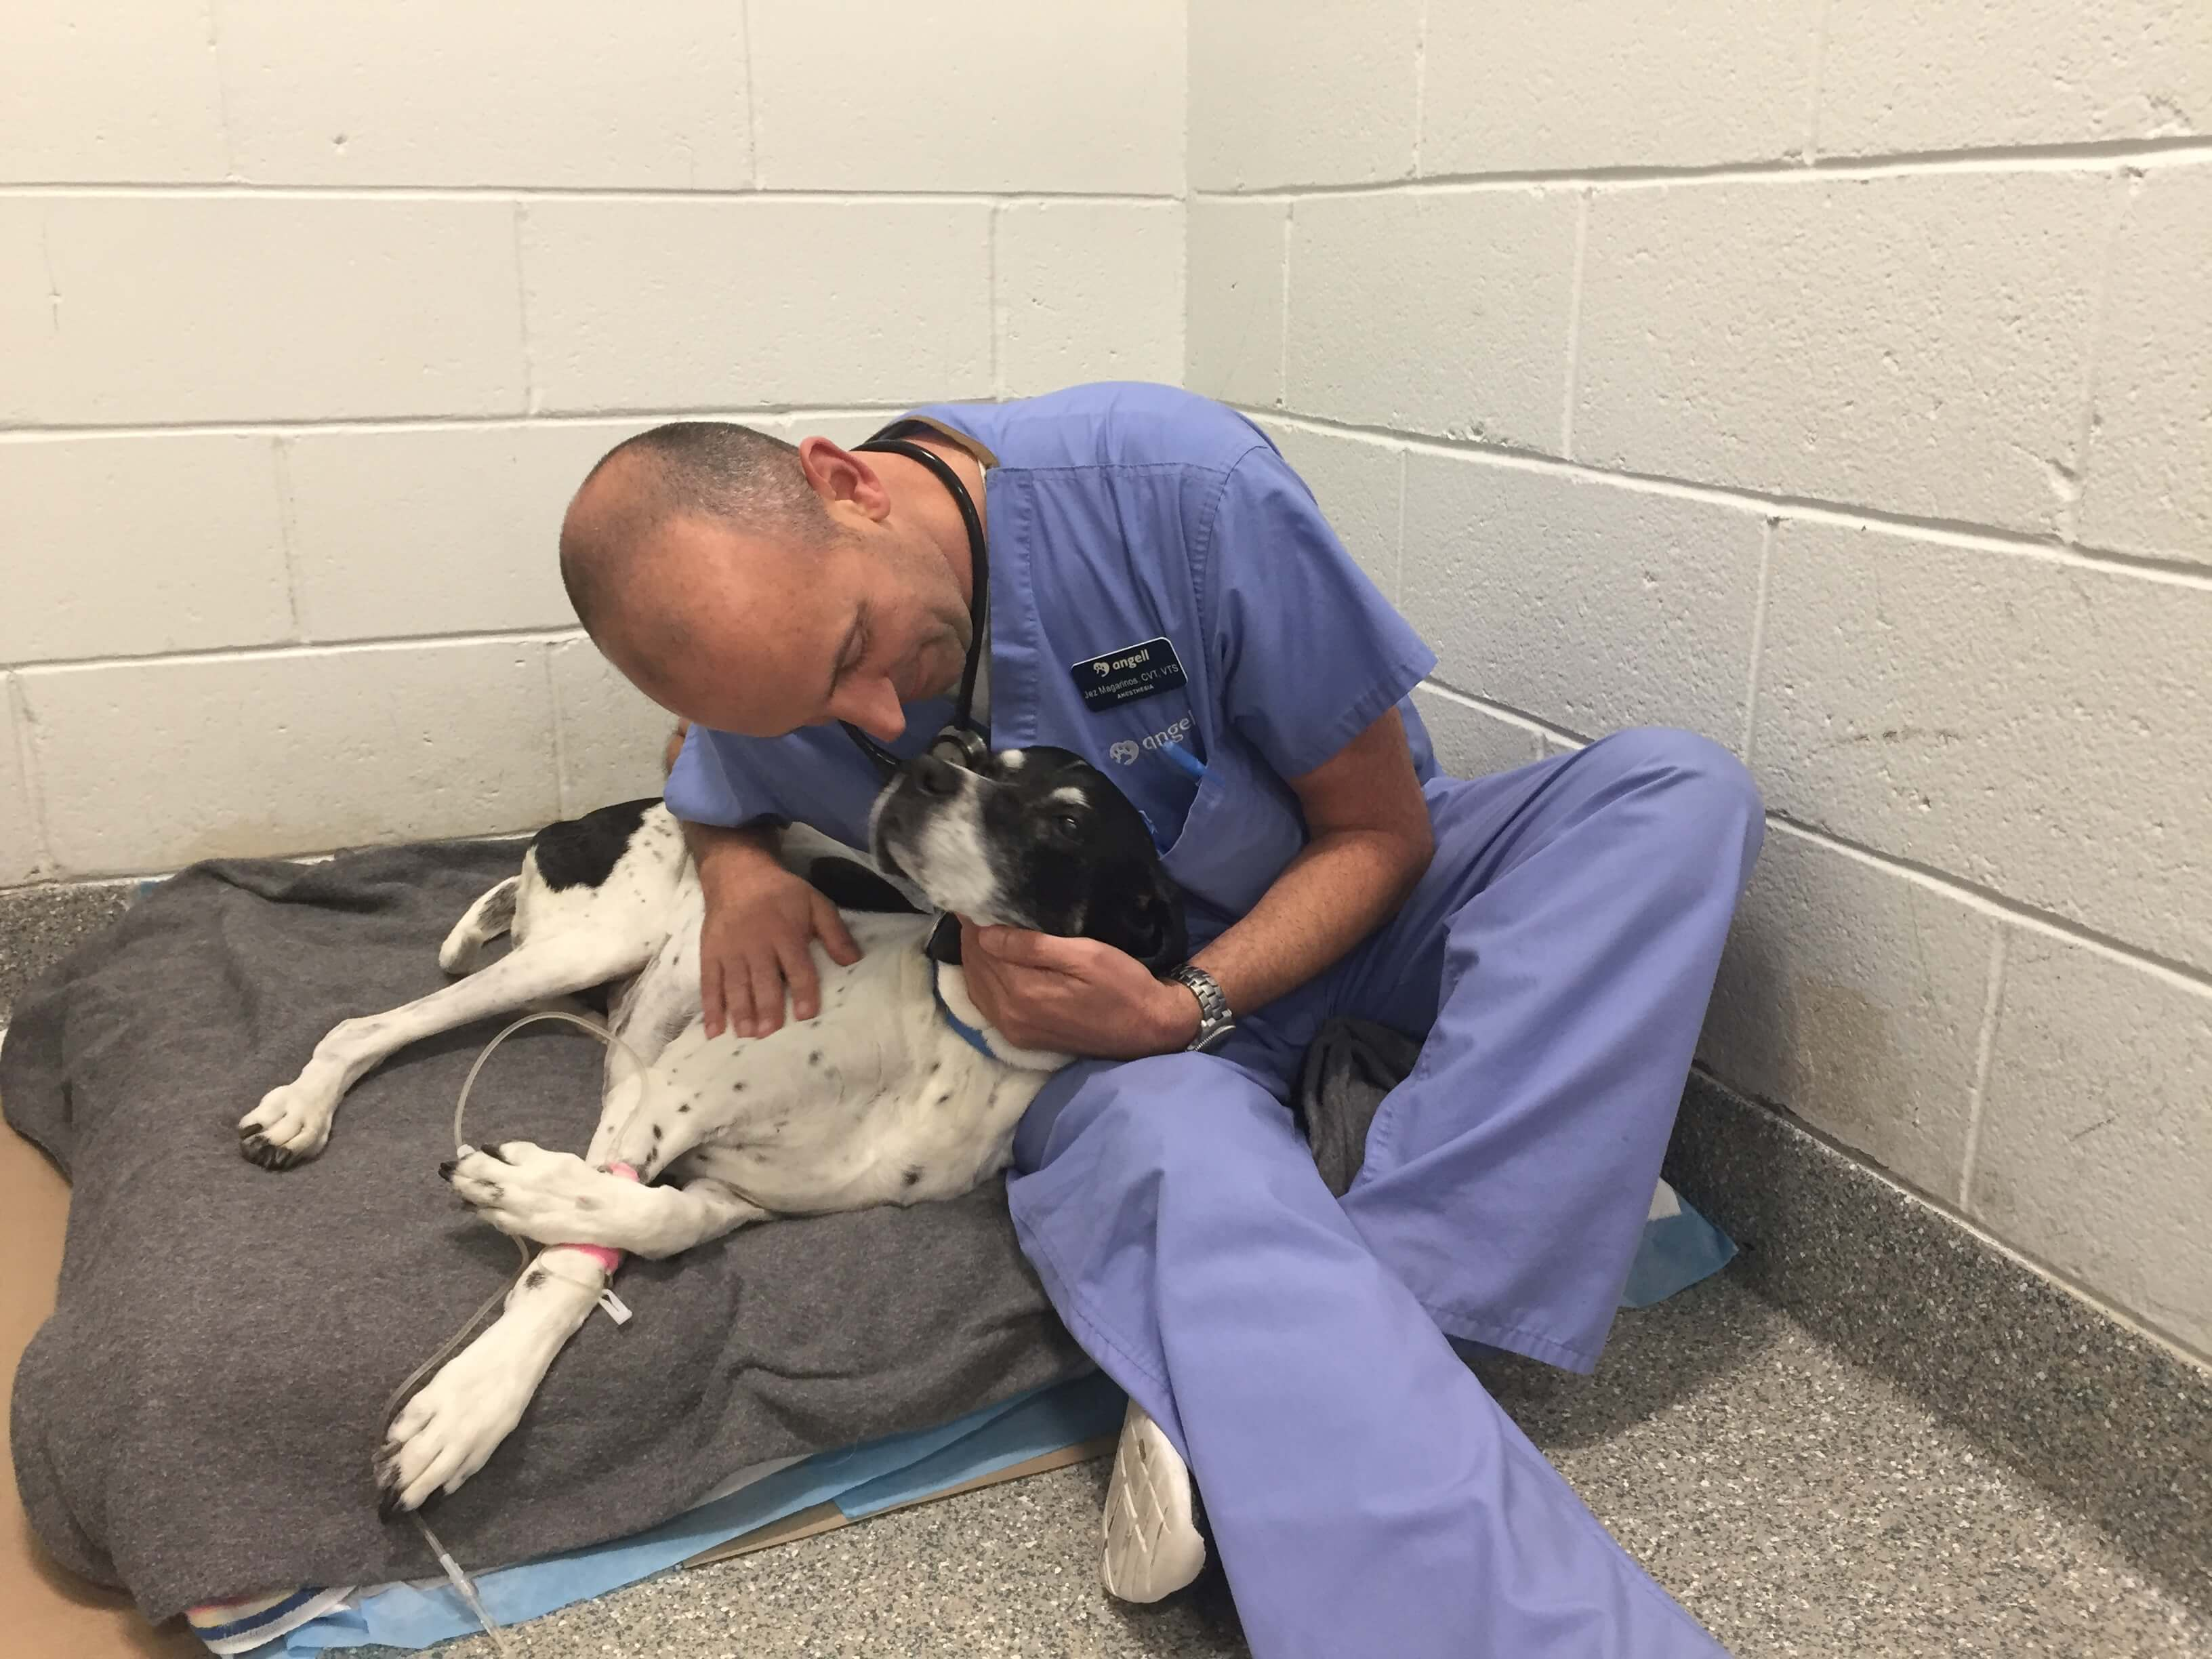 jez-magarinos-a-certified-veterinary-technician-at-angell-and-comfort-volunteer-with-a-canine-patient-5-credit-mspca-angell